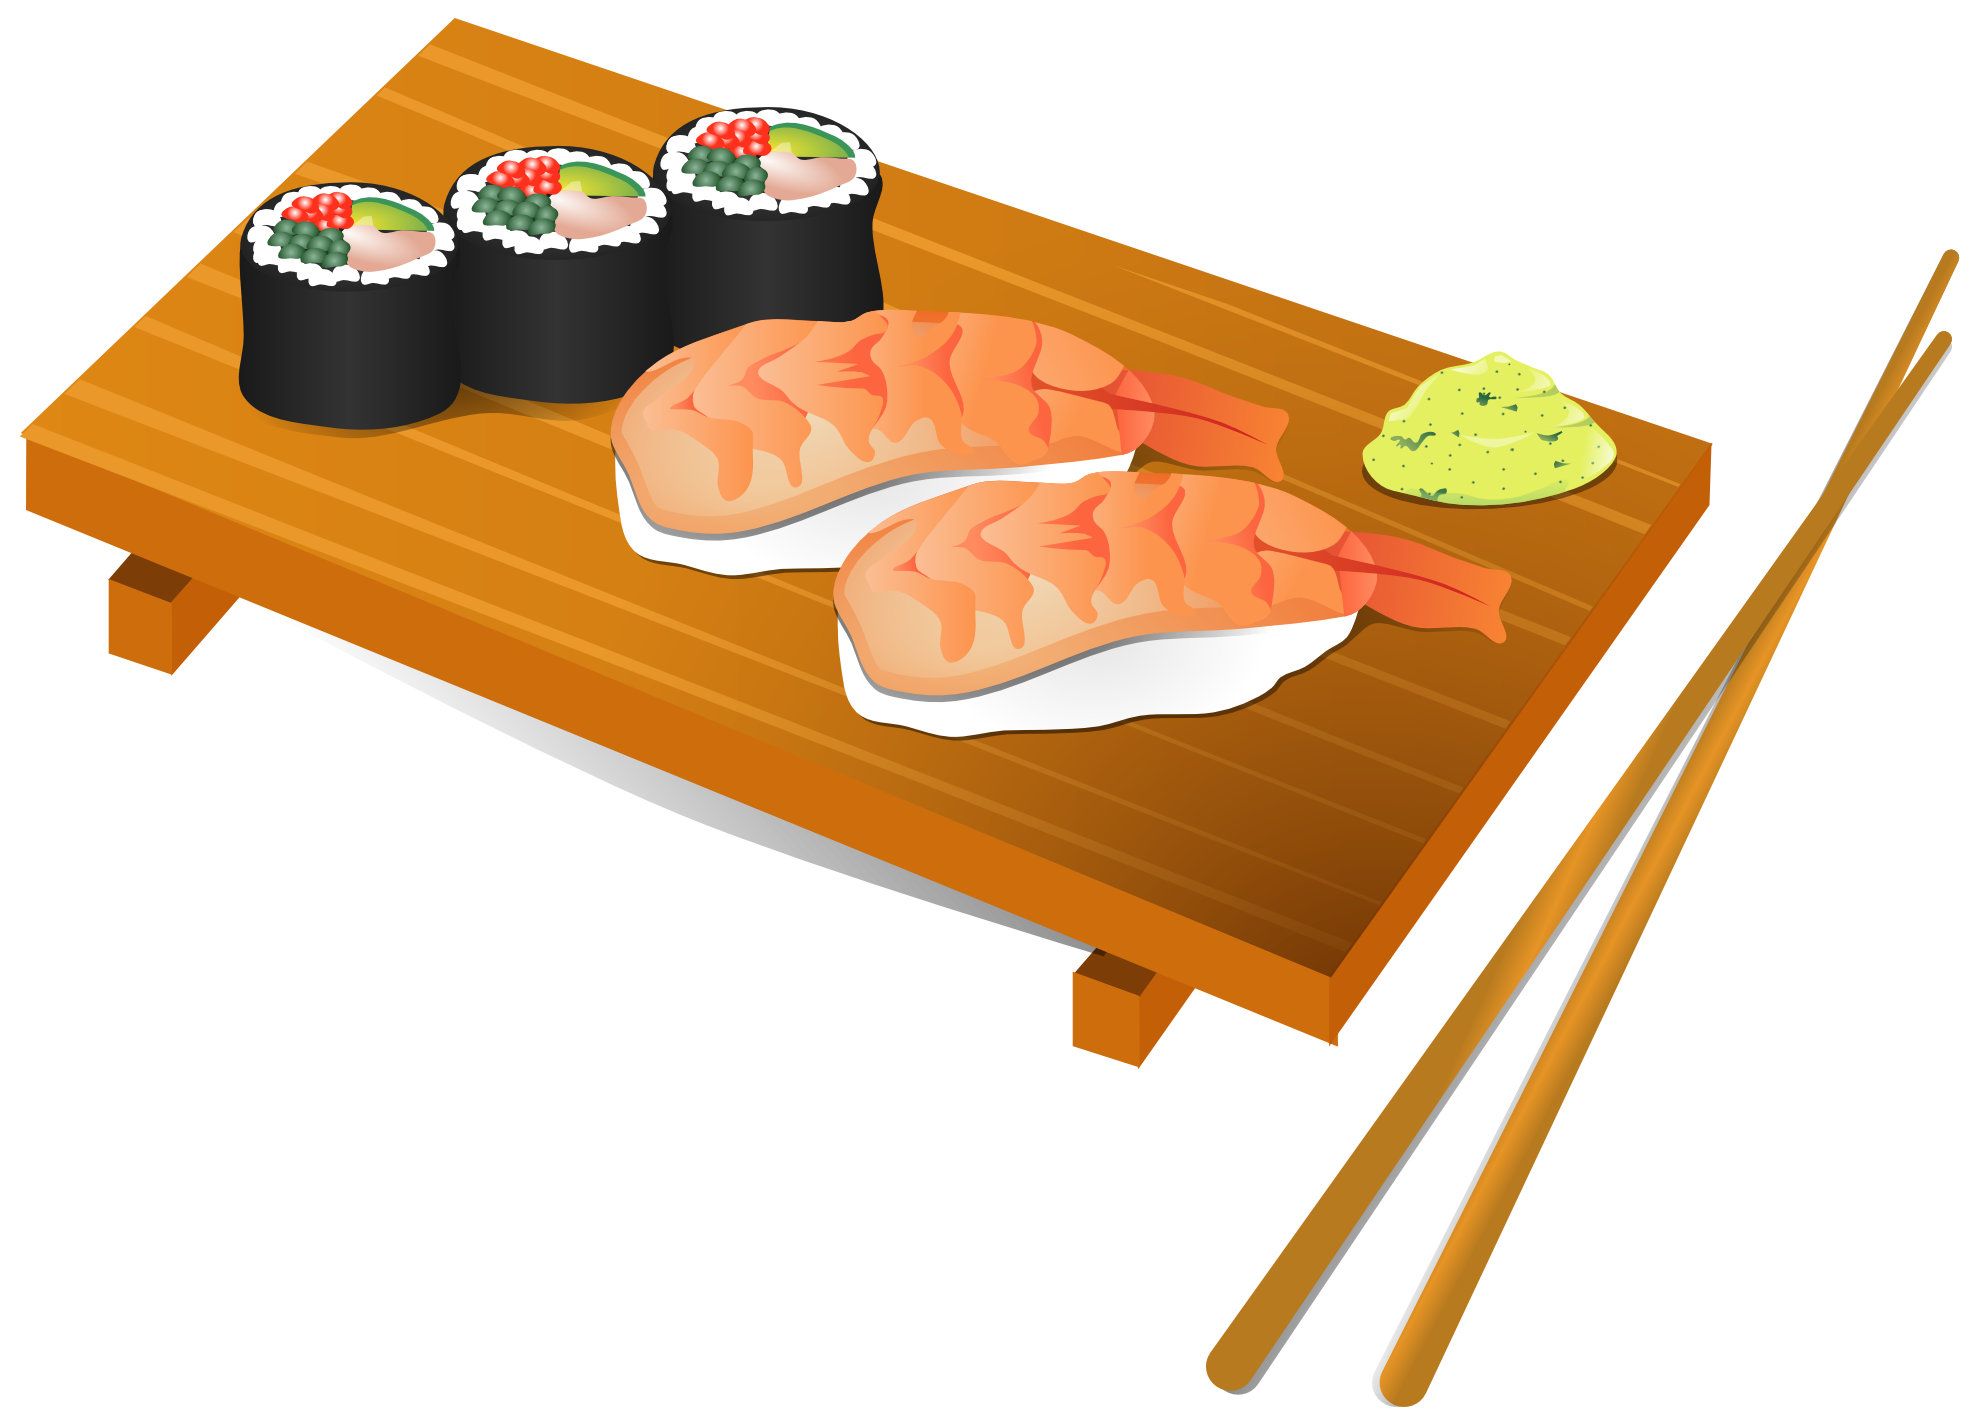 Sushi clipart png. Px panda free images